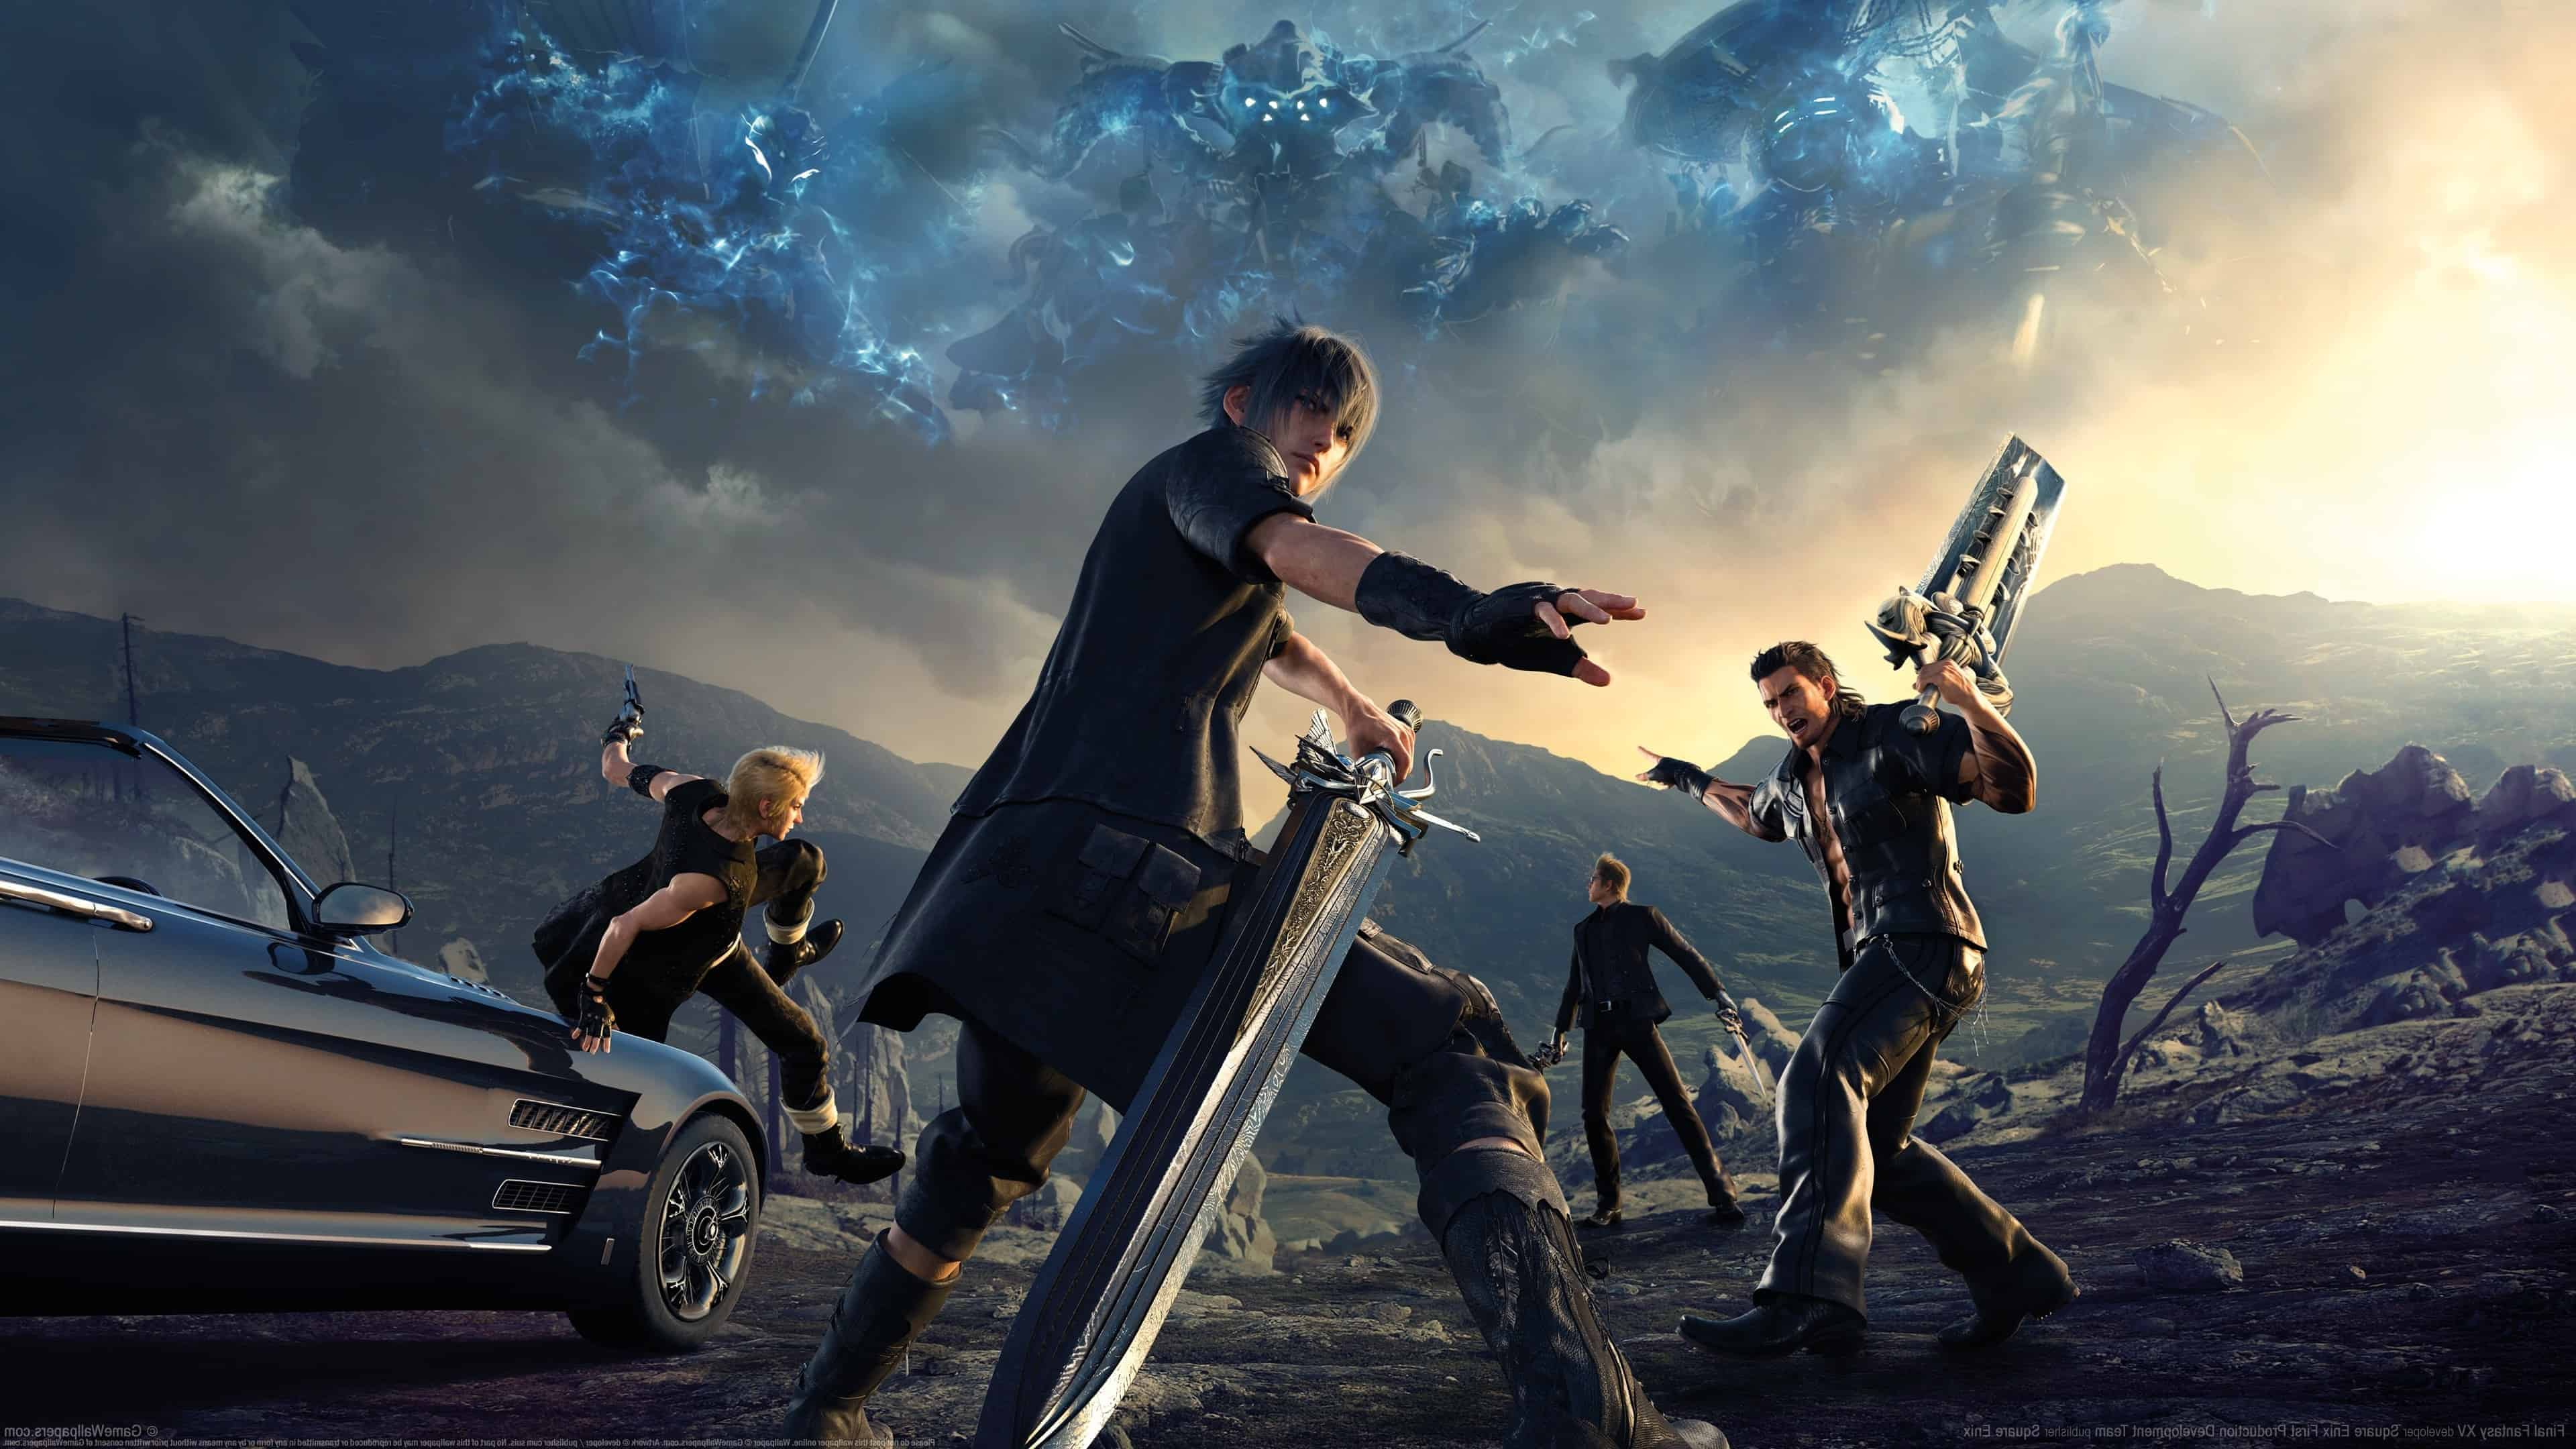 Final Fantasy Xv Wallpaper 78 Images: Final Fantasy XV UHD 4K Wallpaper